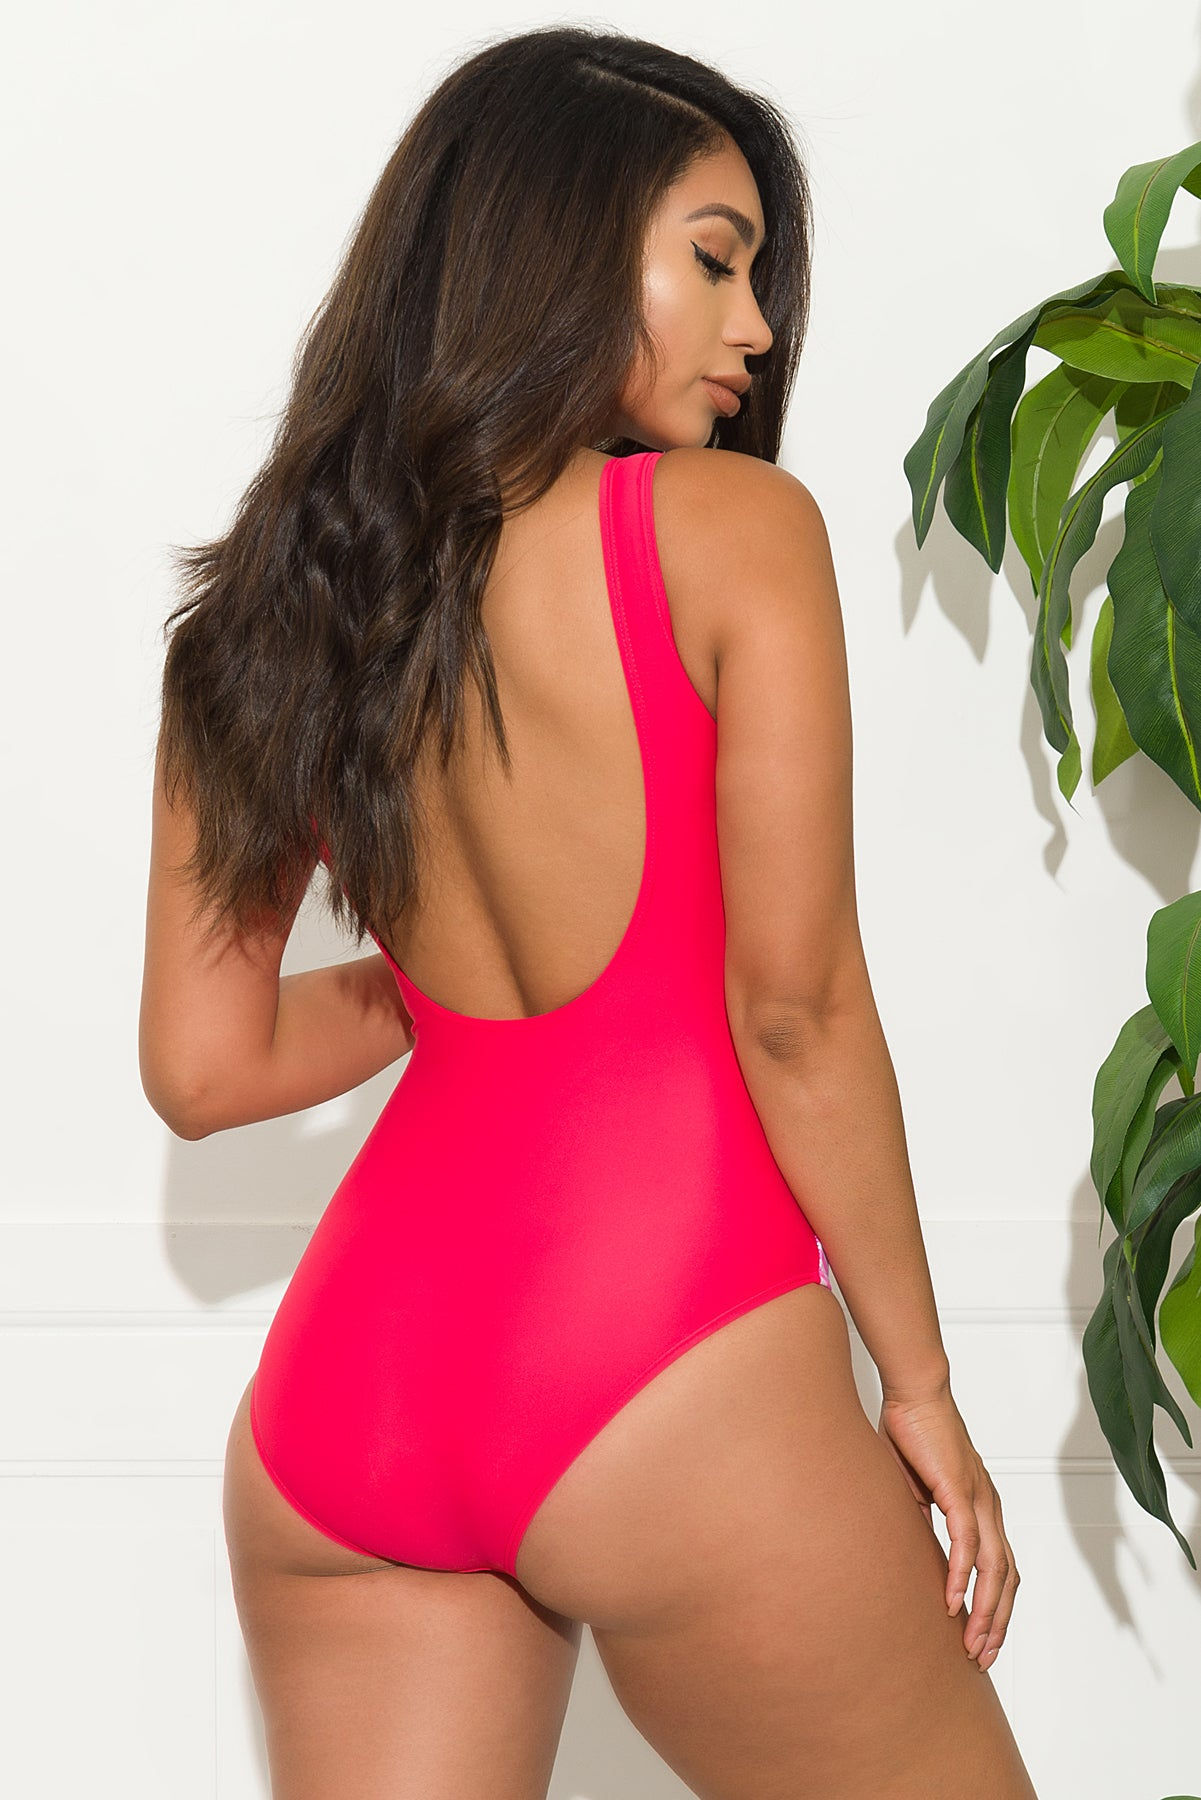 Del Mar One Piece Swimsuit - Pink